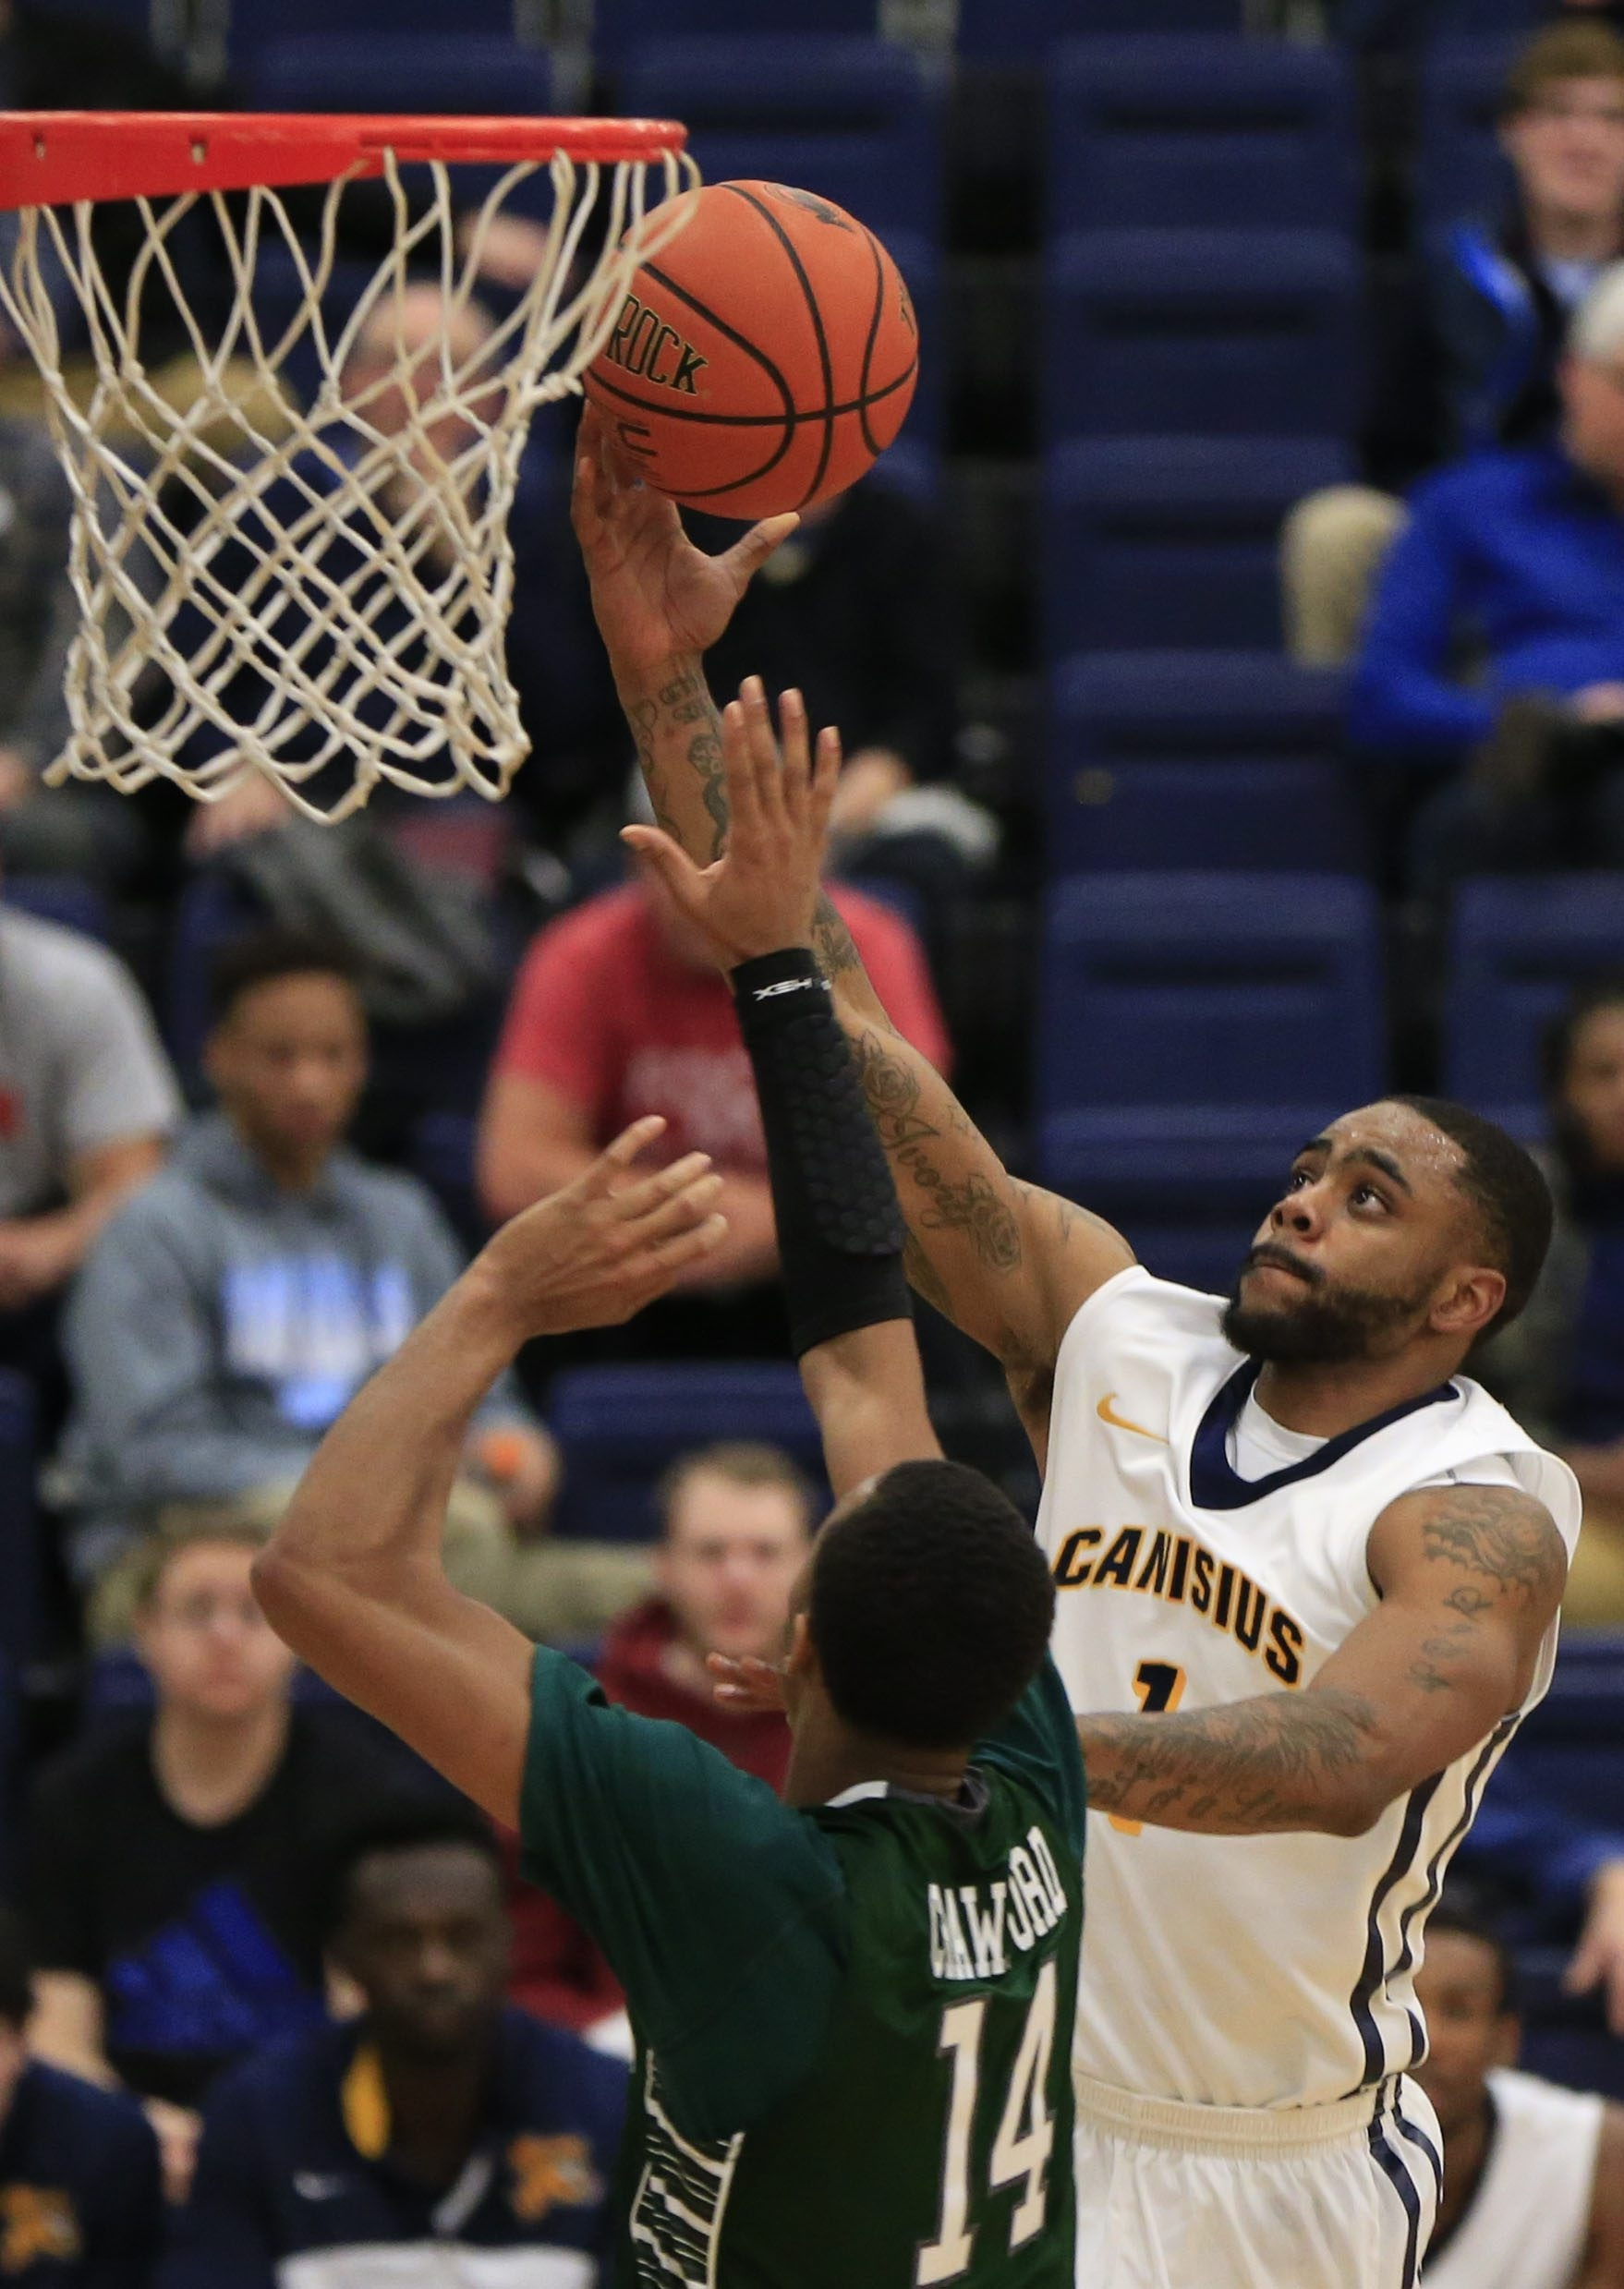 Canisius guard Malcolm McMillan averages a team-high 16 points for the Golden Griffins.  (Harry Scull Jr./Buffalo News)